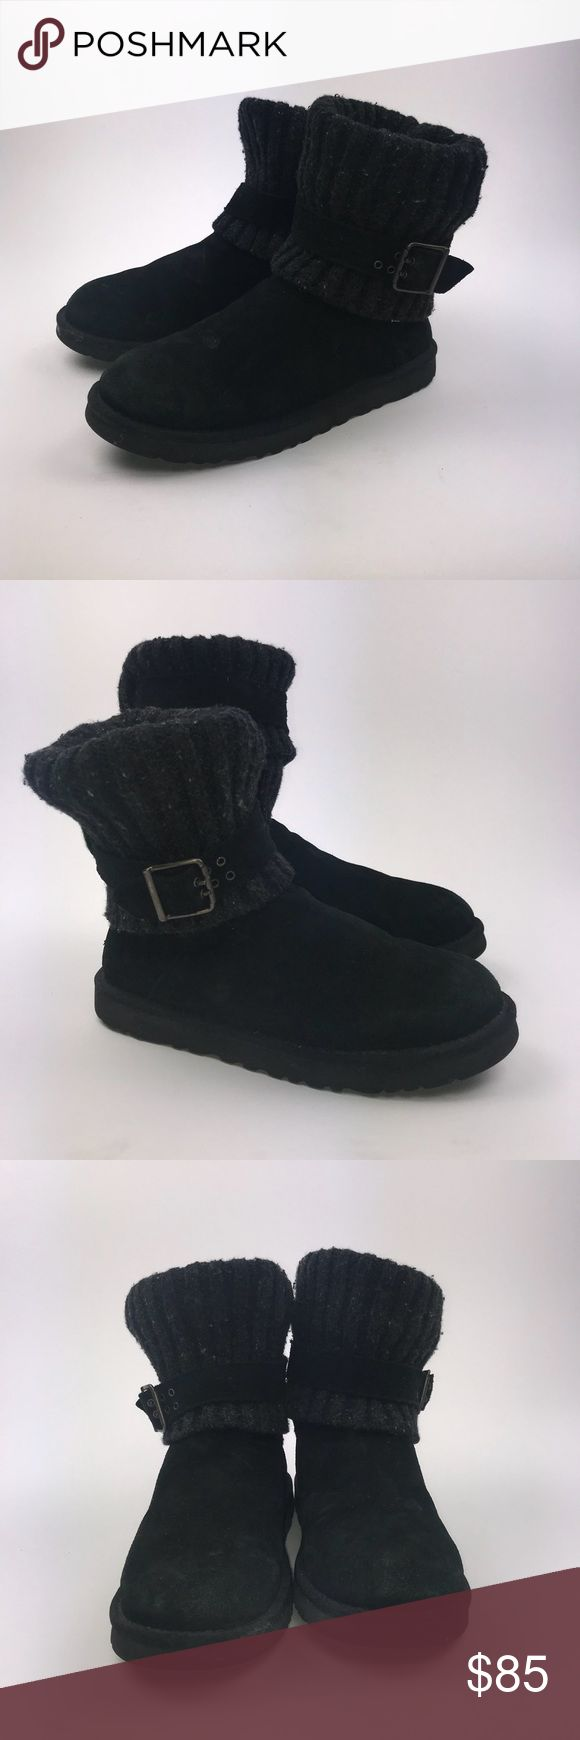 UGG Women's Black Cambridge Knit Boots Size 8 UGG Australia Women's Cambridge Knit Boots Black Size 8 Pre-owned *Any defects or signs of wear are shown in images -Water damage   PM367 UGG Shoes